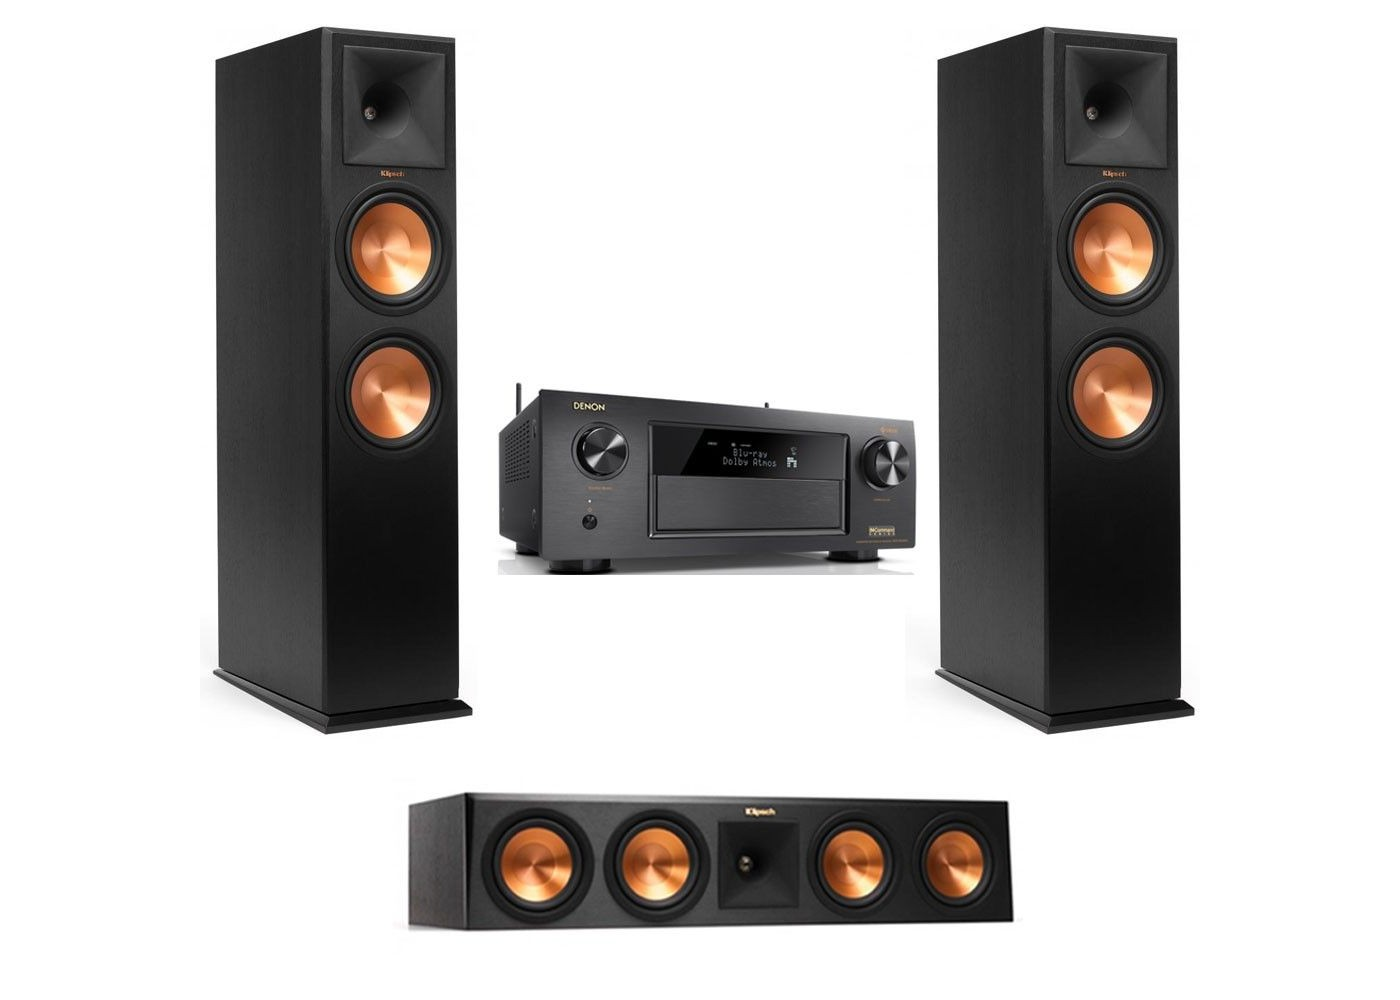 Klipsch RP-280FA Pair, RP-450C Center - 3 0 2 Dolby Atmos Home Theater  Bundle with Denon AVR-X4400H Receiver